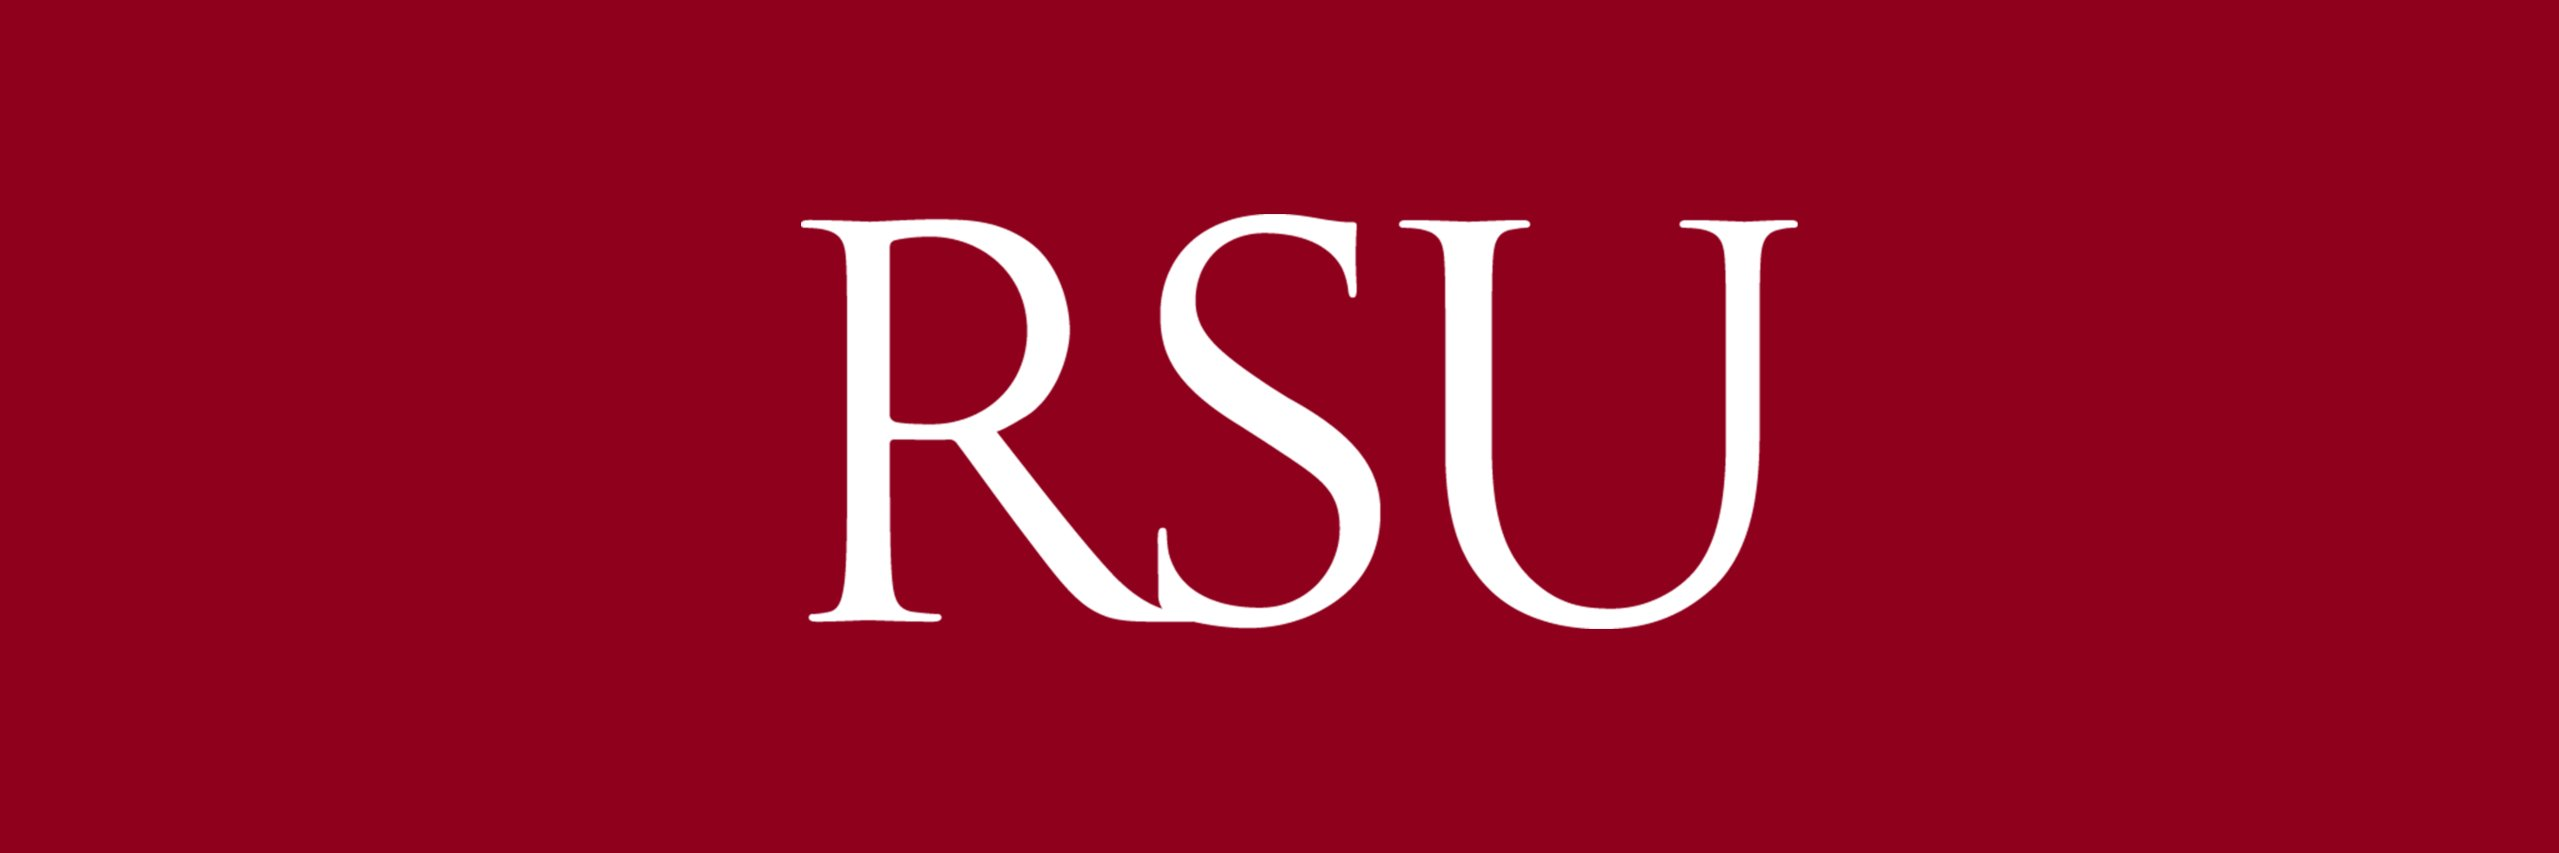 Rigas Stradina Universitate's official Twitter account